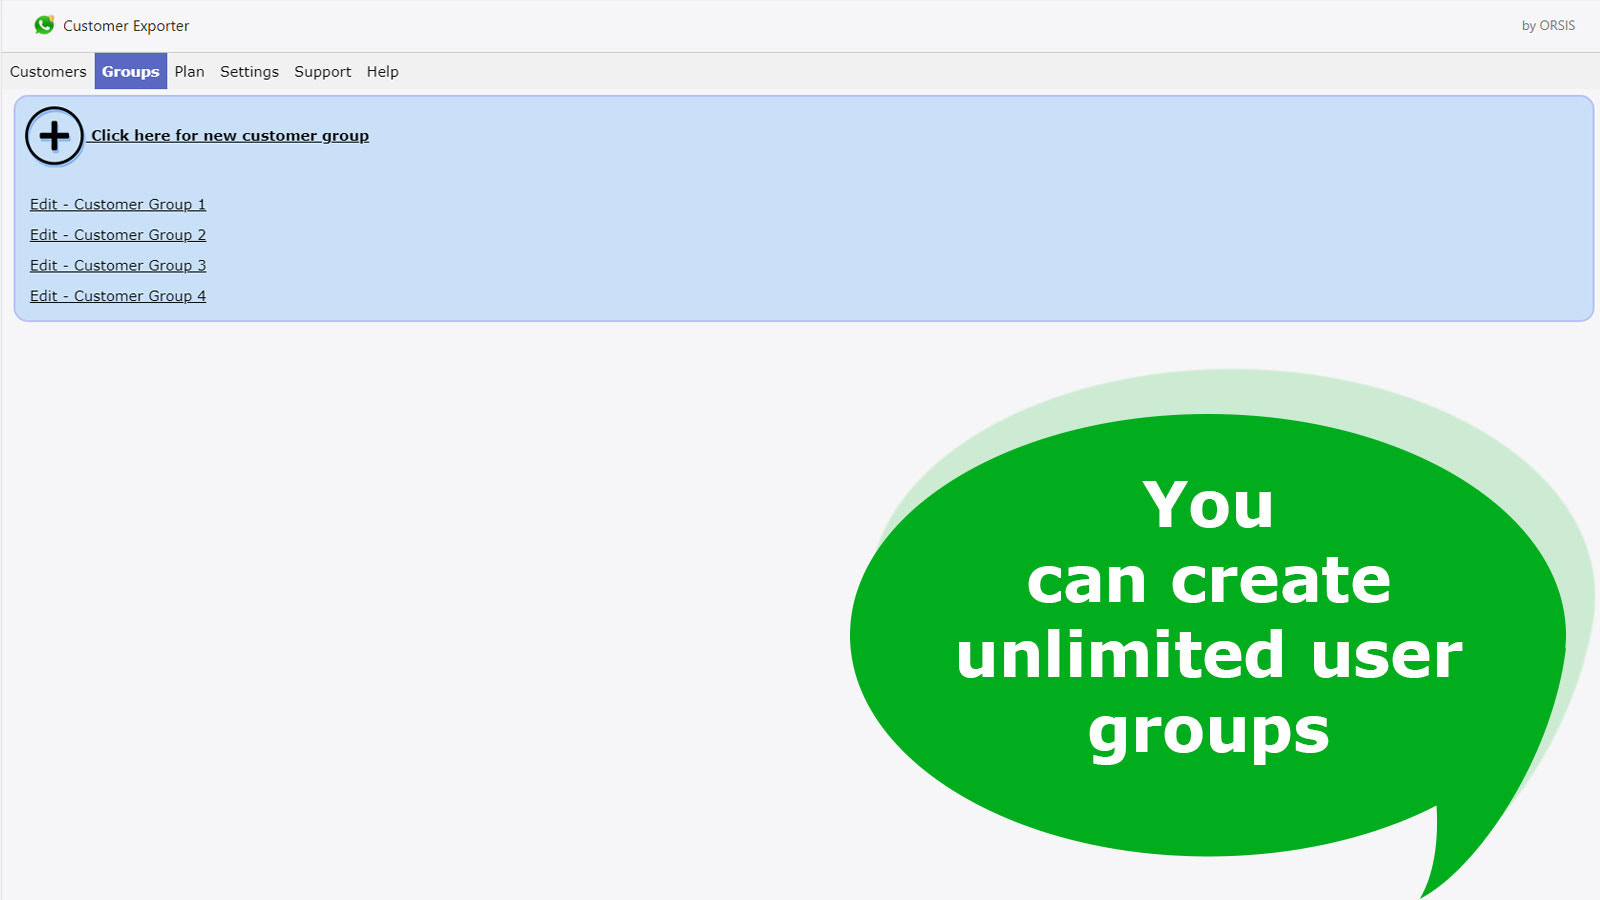 You can create unlimited user groups